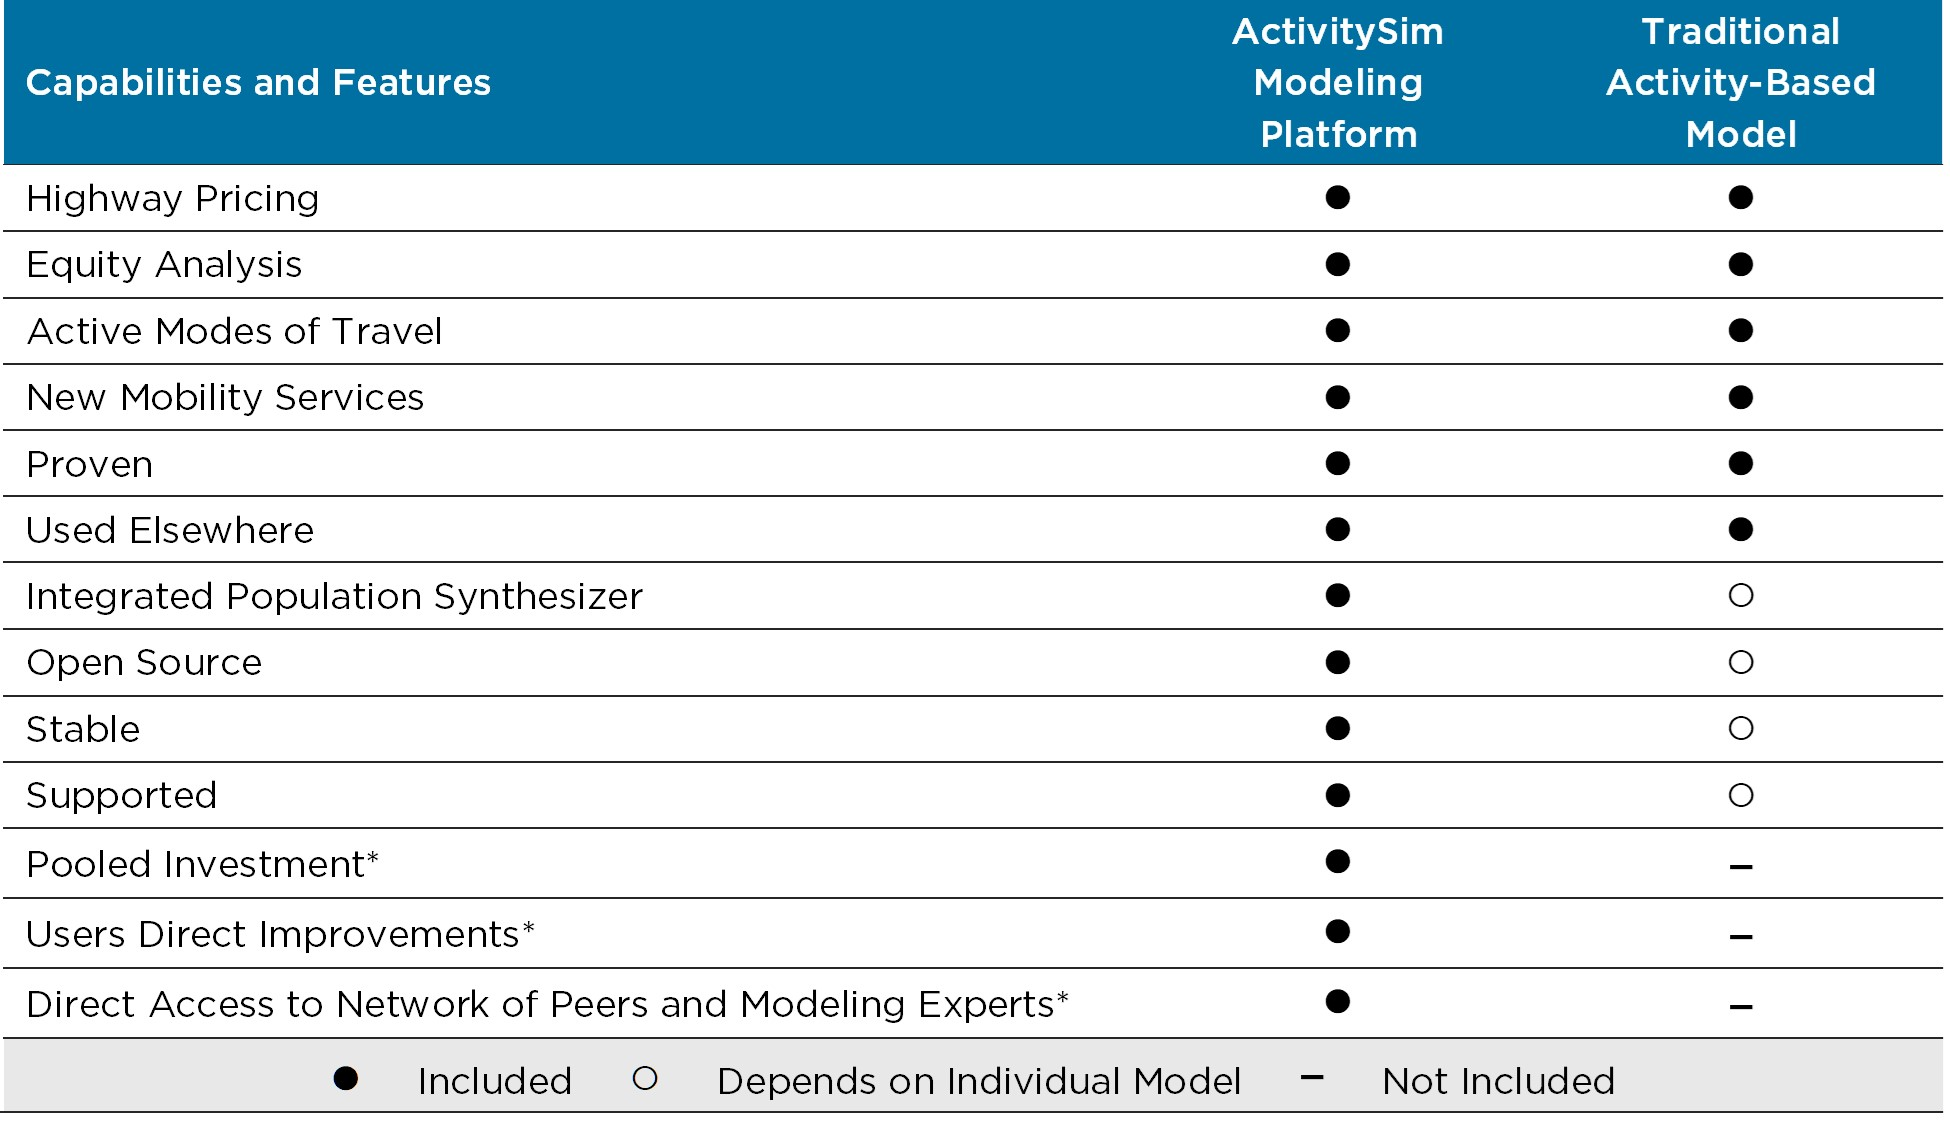 Table 1_Capabilities and Features Matrix